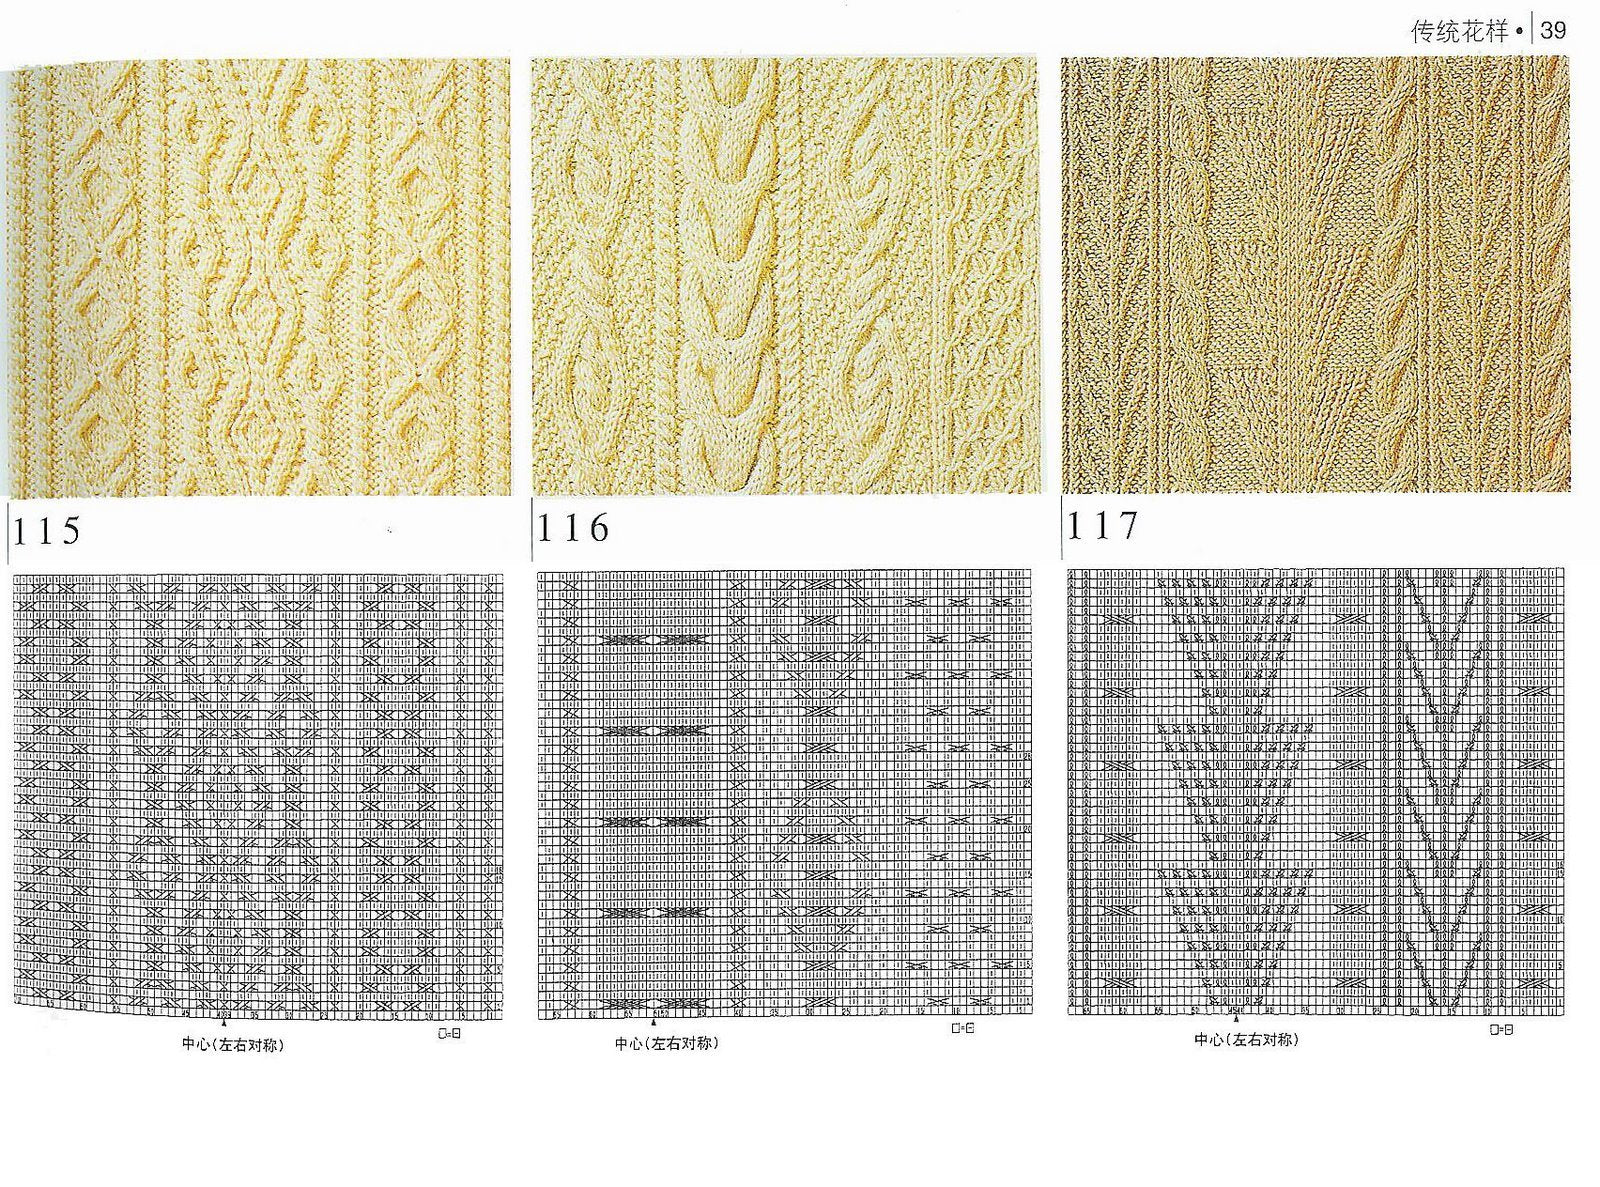 Knitting patterns for your pullover project